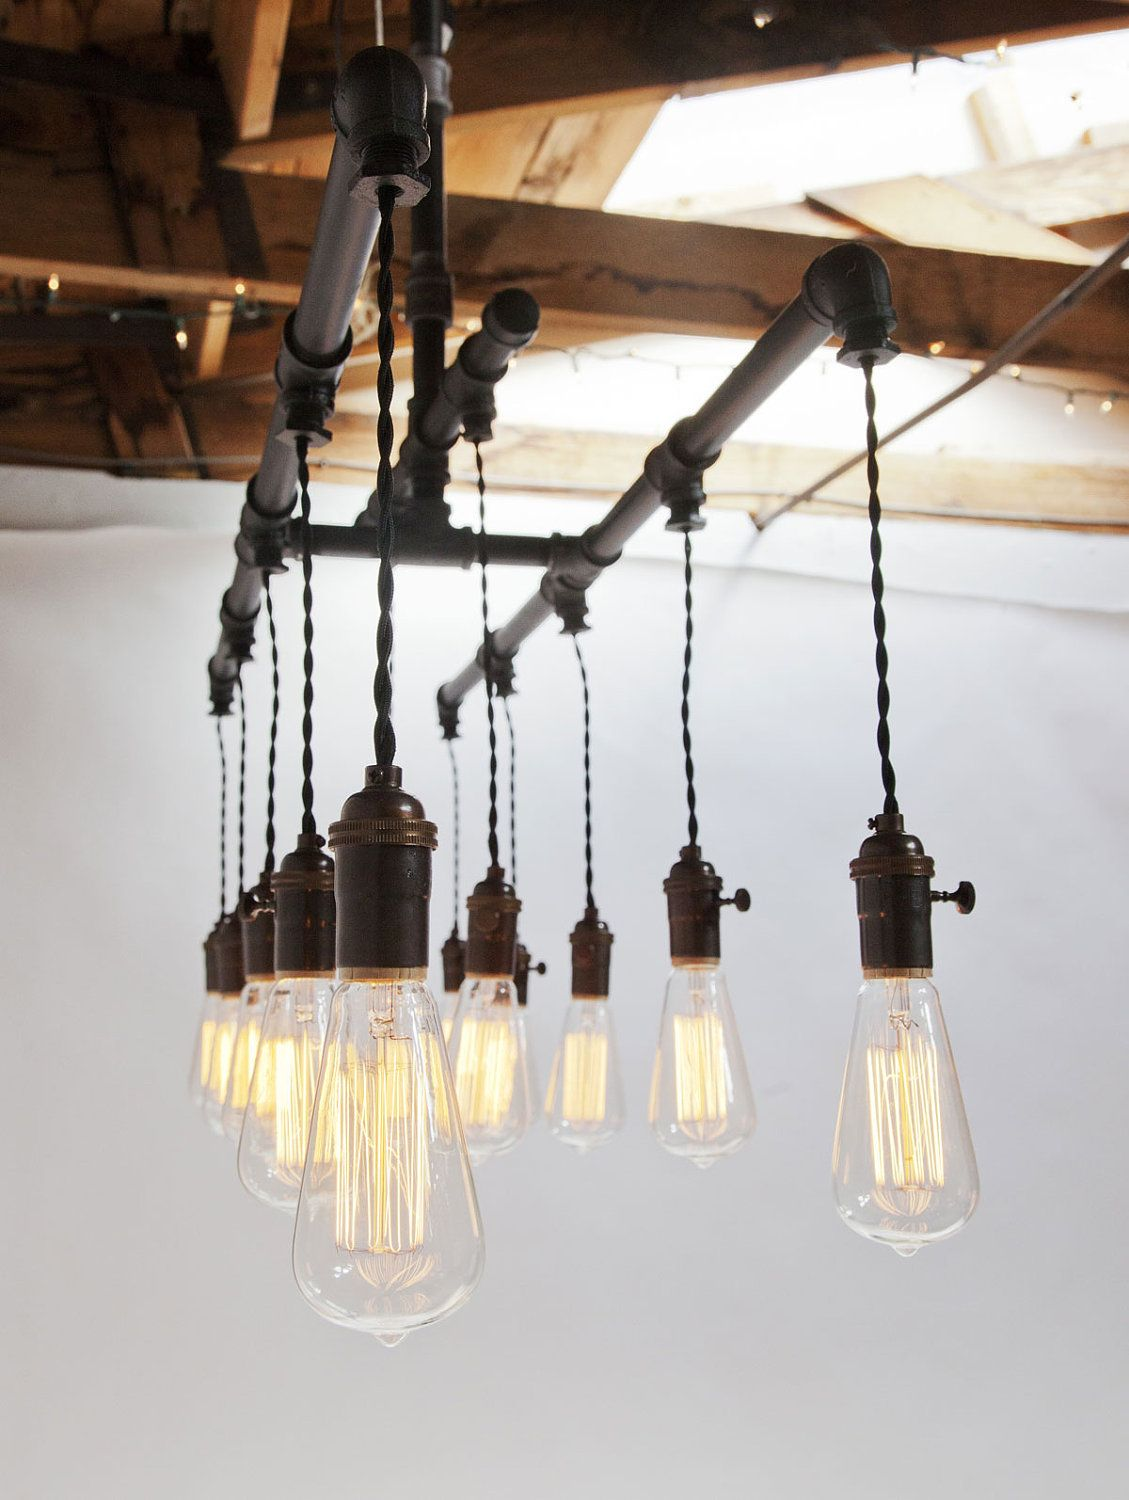 Handmade in san francisco fab finds for your interior - Commercial lighting fixtures interior ...